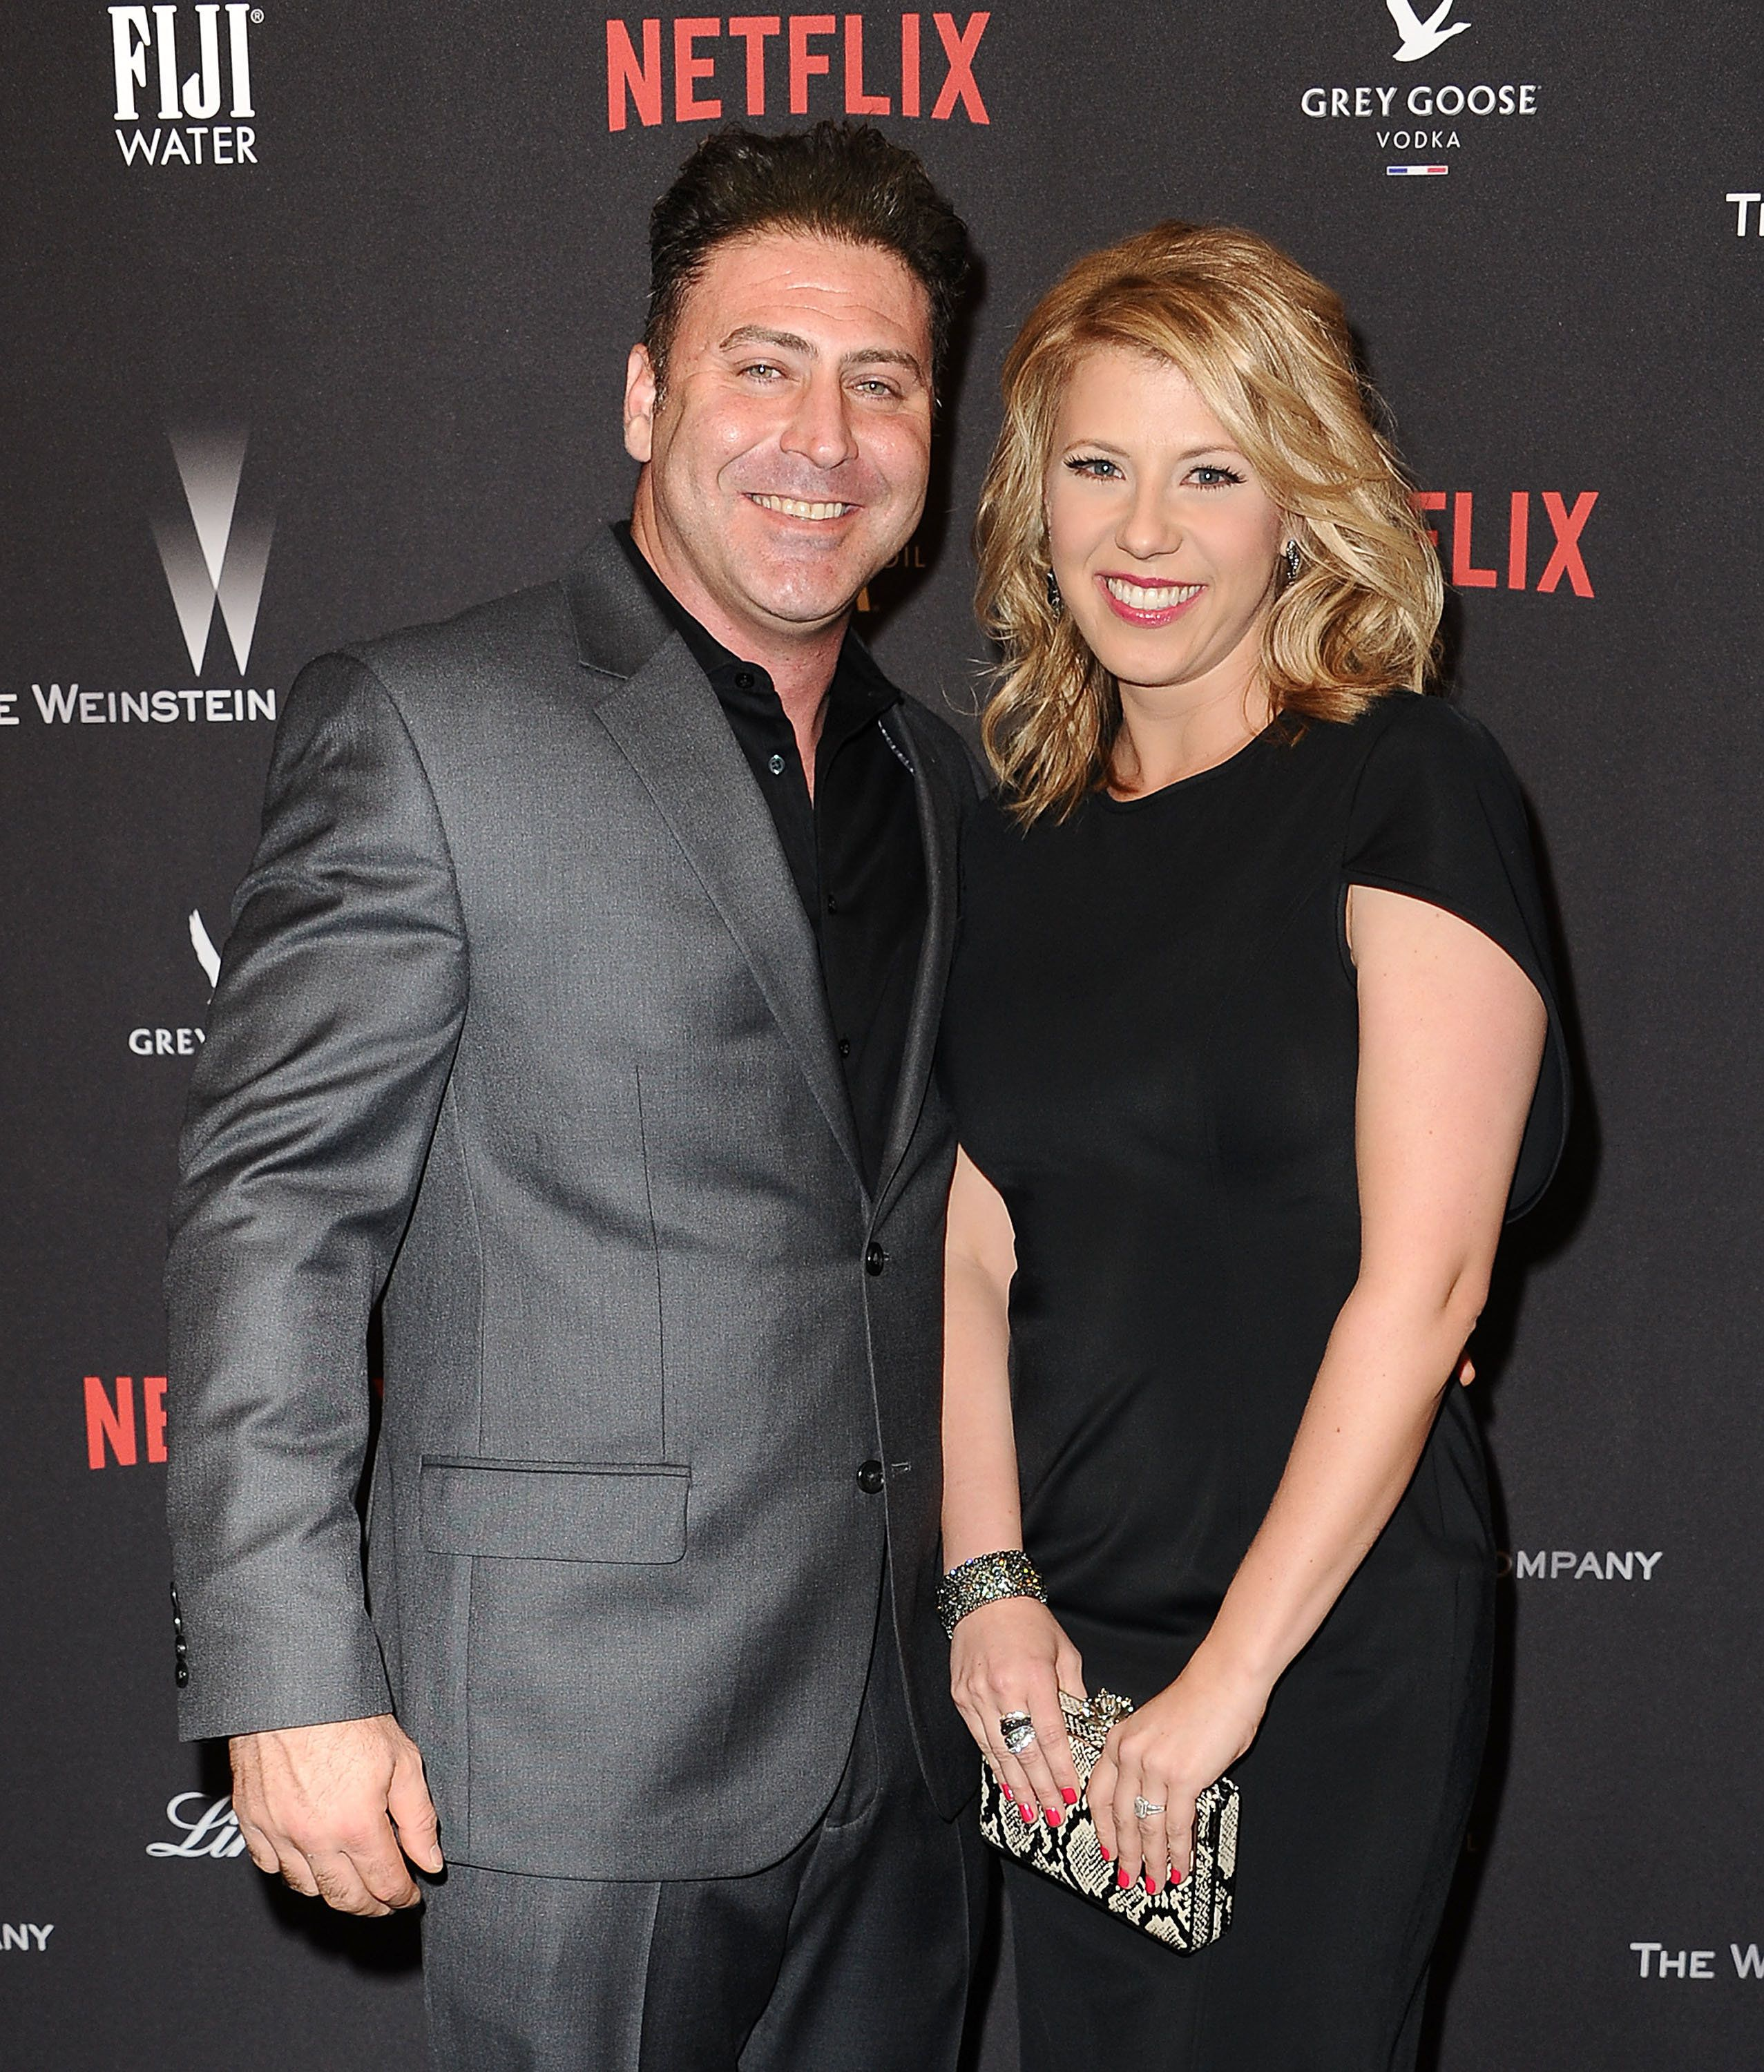 Jodie Sweetin and Justin Hodak attend a Netflix event in 2017.